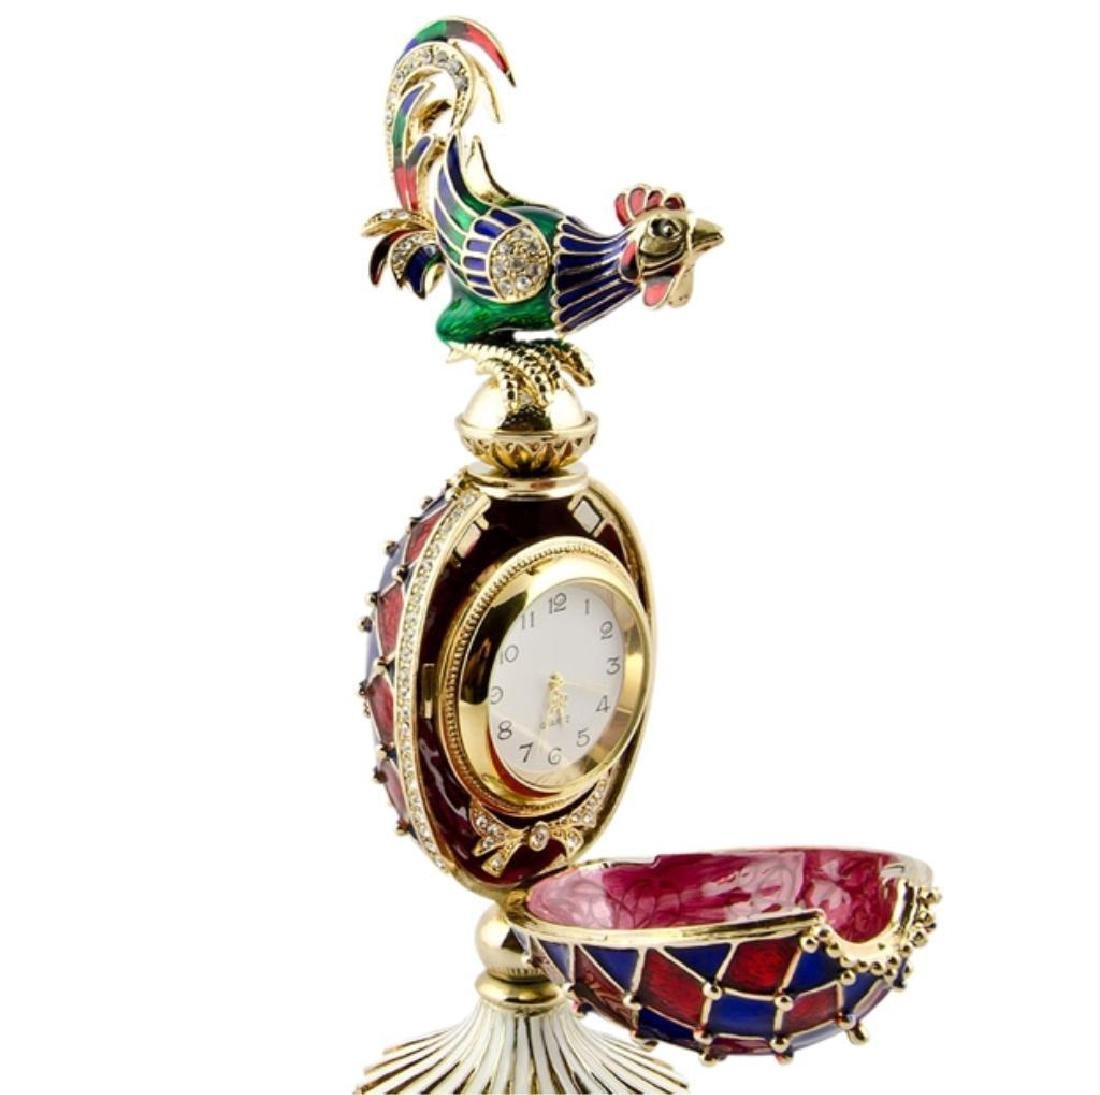 Faberge Inspired Rooster Egg Clock - 5